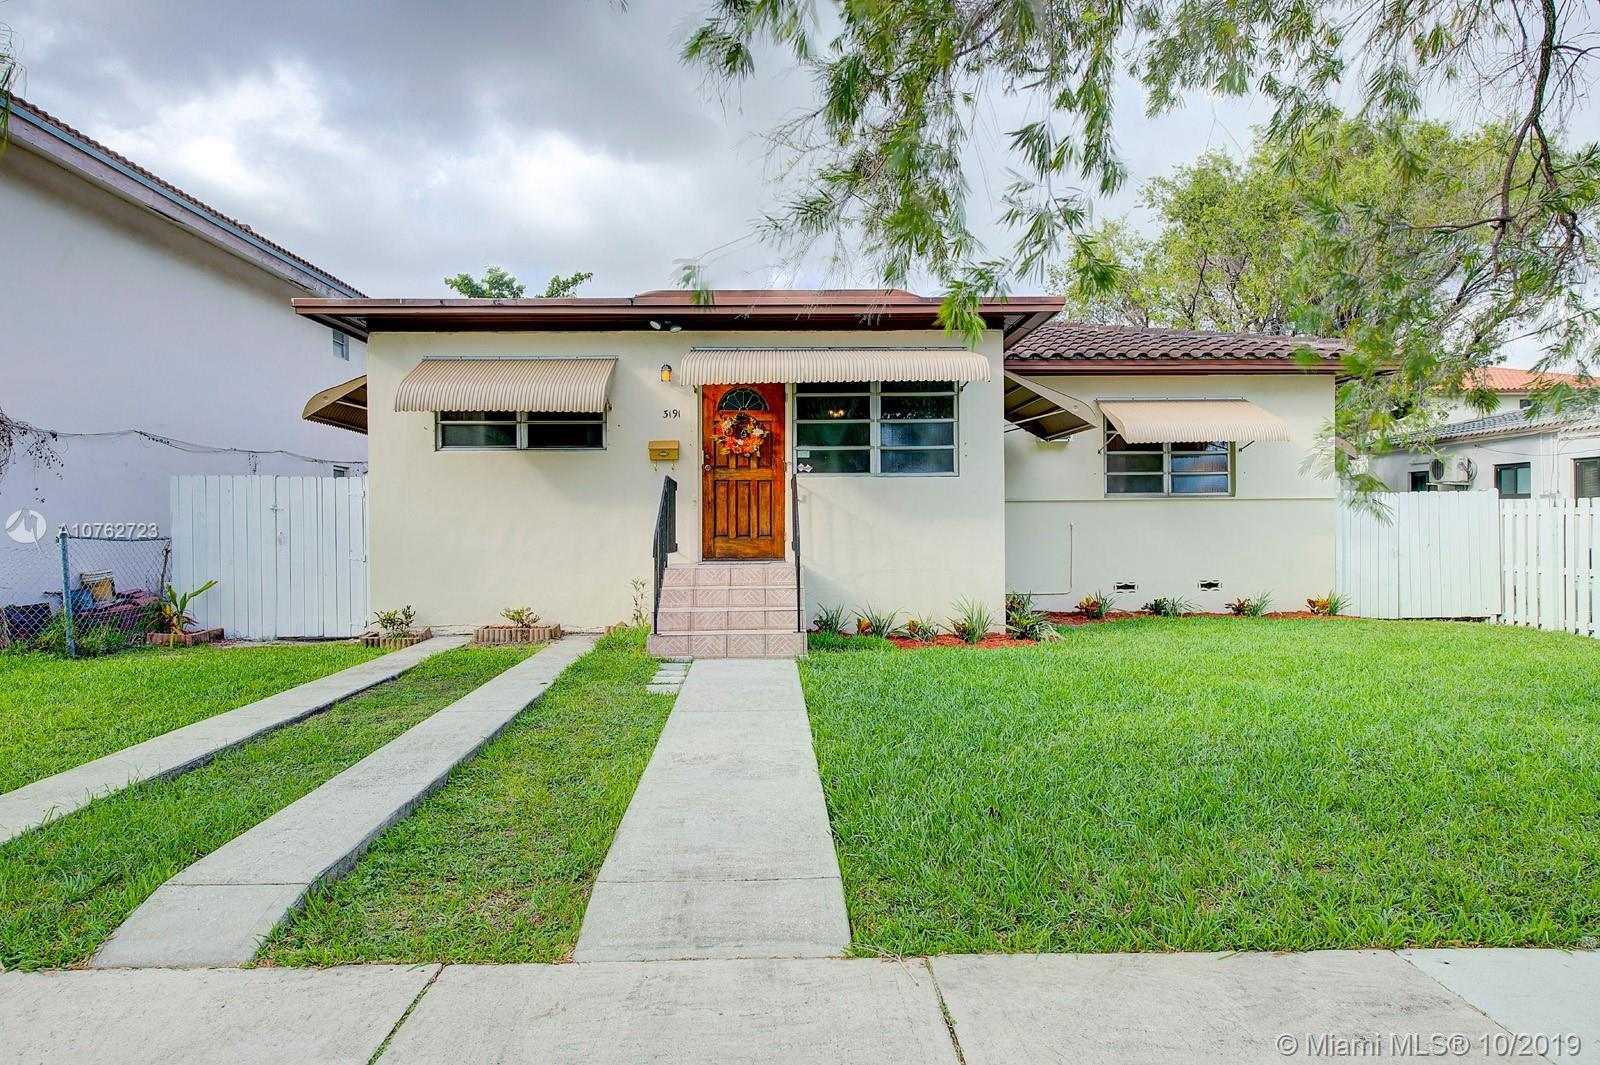 Newly Repriced! Only ONE family has resided here, keeping this home full of love and pride. Custom b